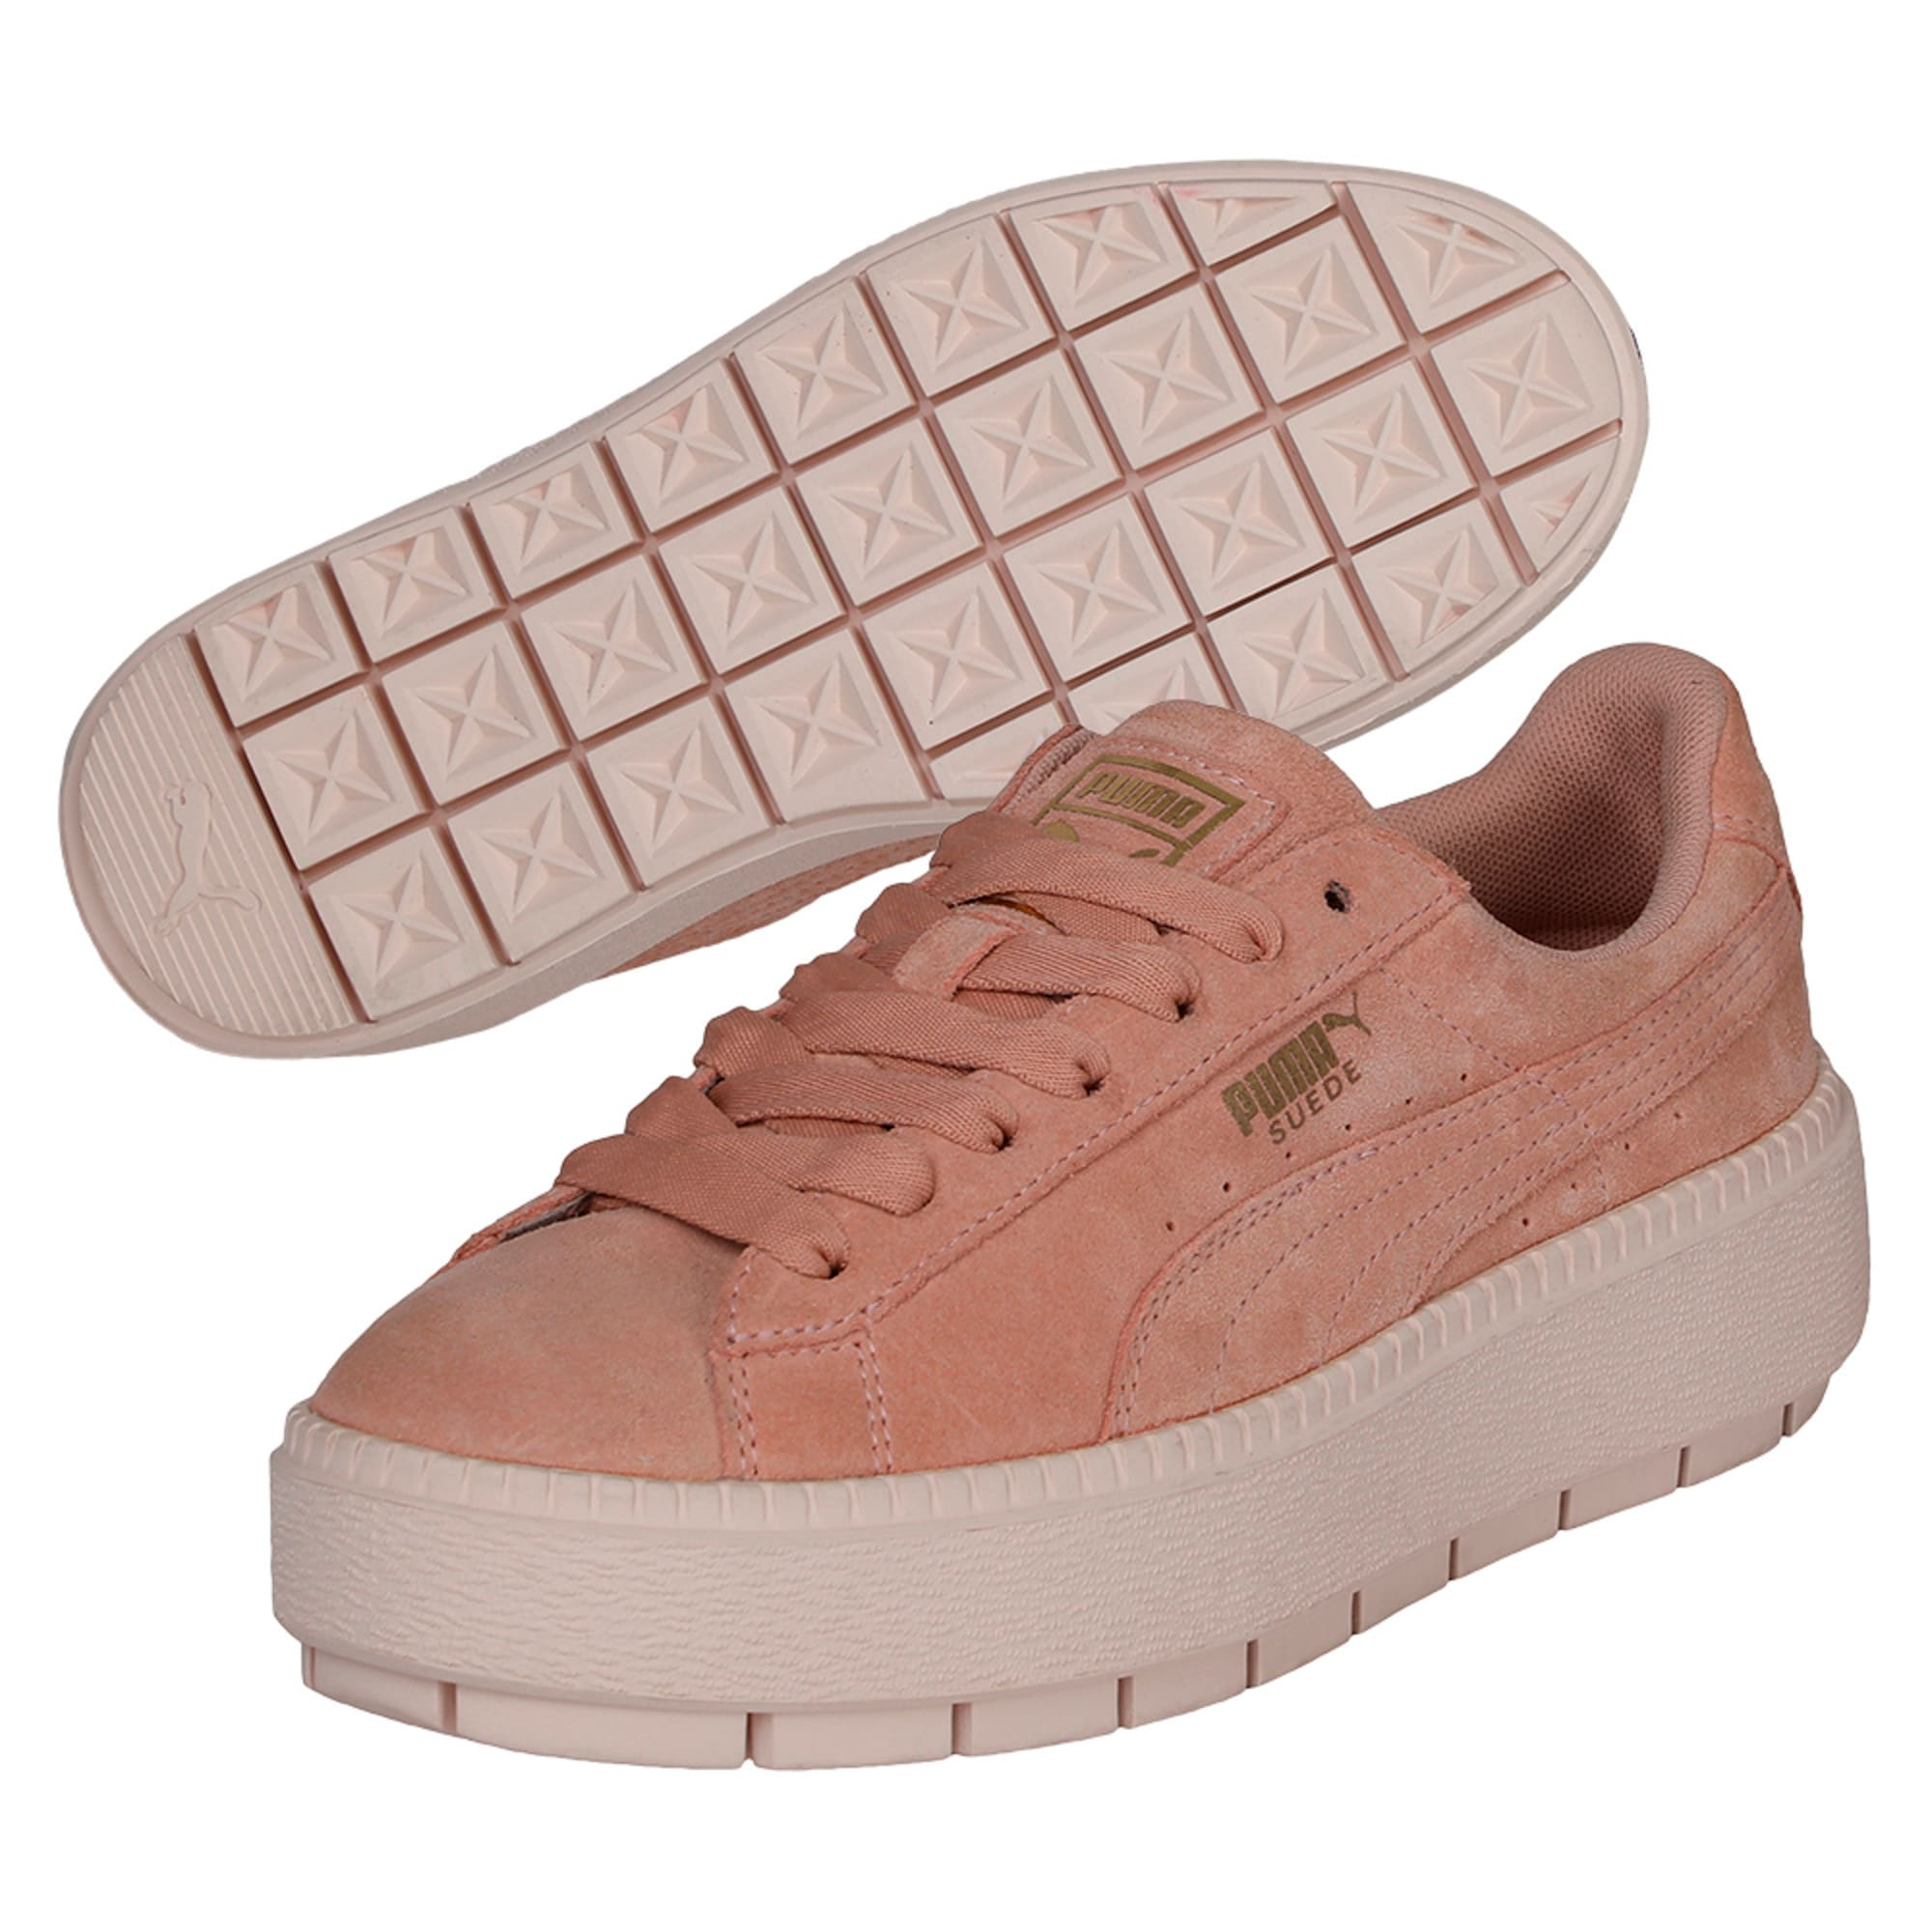 Thumbnail 6 of Platform Trace Women's Trainers, Peach Beige-Pearl, medium-IND